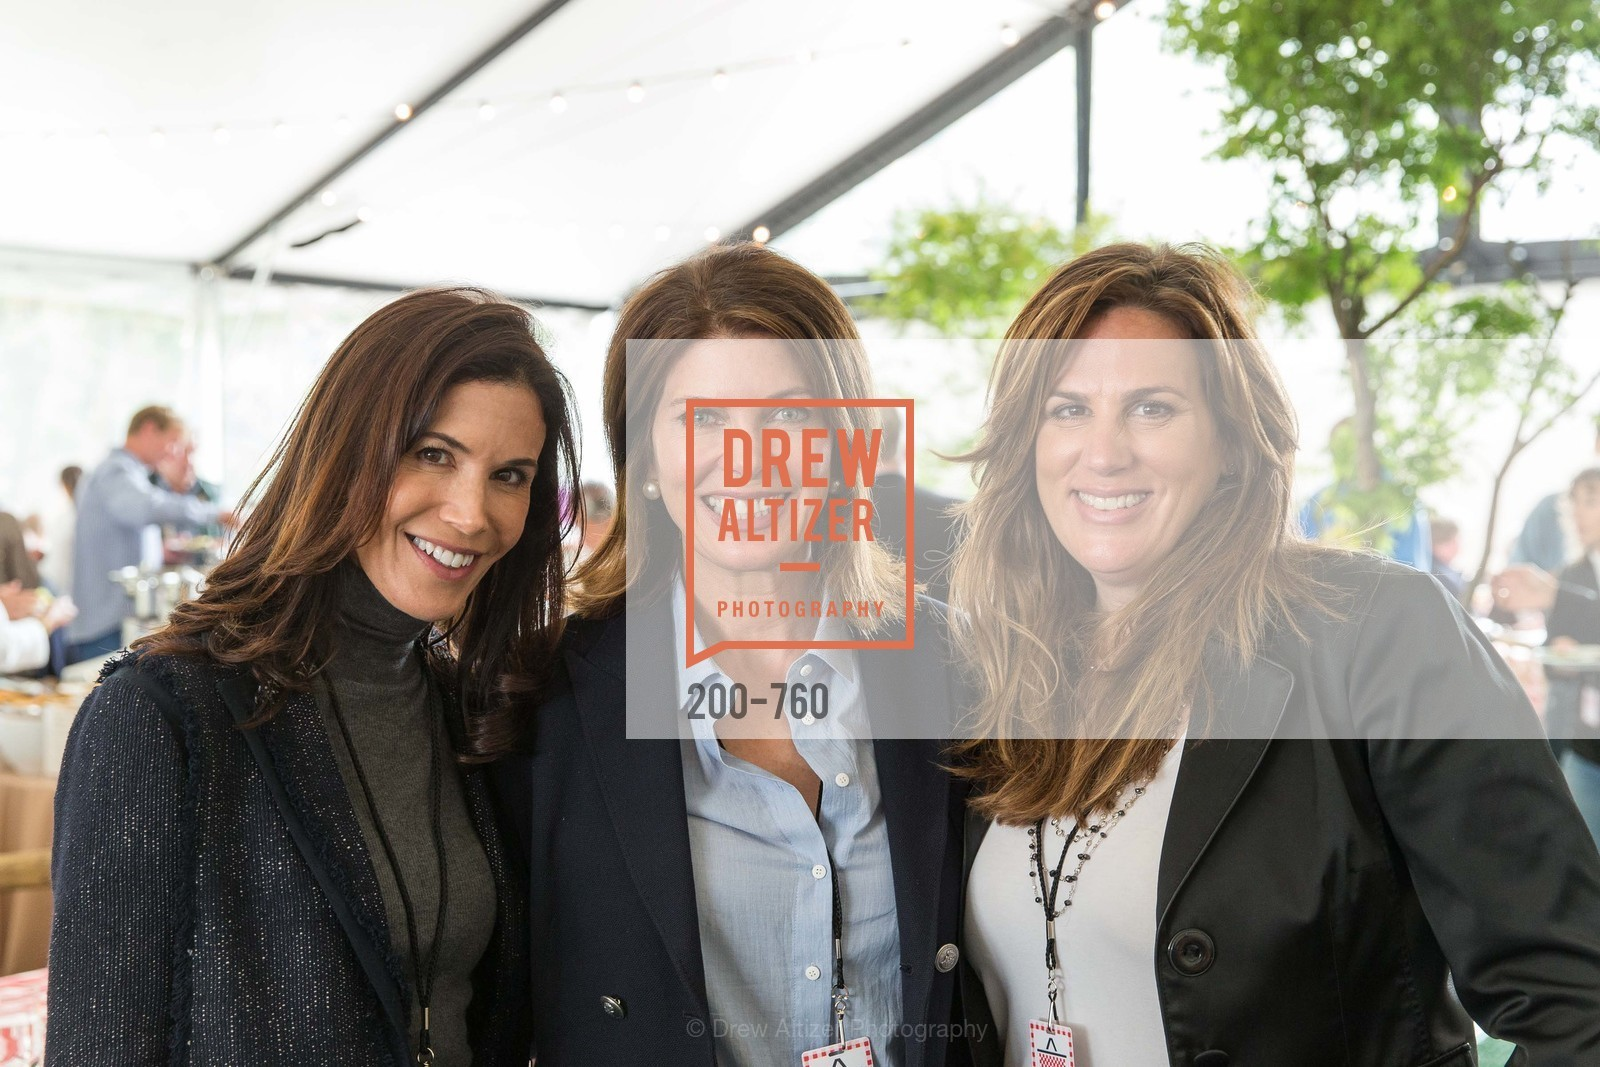 Gretchen DiNapoli, Karen Lott, Ruth Fletcher, The Big Picnic! A Benefit & Concert for STERN GROVE FESTIVAL, US, June 14th, 2015,Drew Altizer, Drew Altizer Photography, full-service agency, private events, San Francisco photographer, photographer california